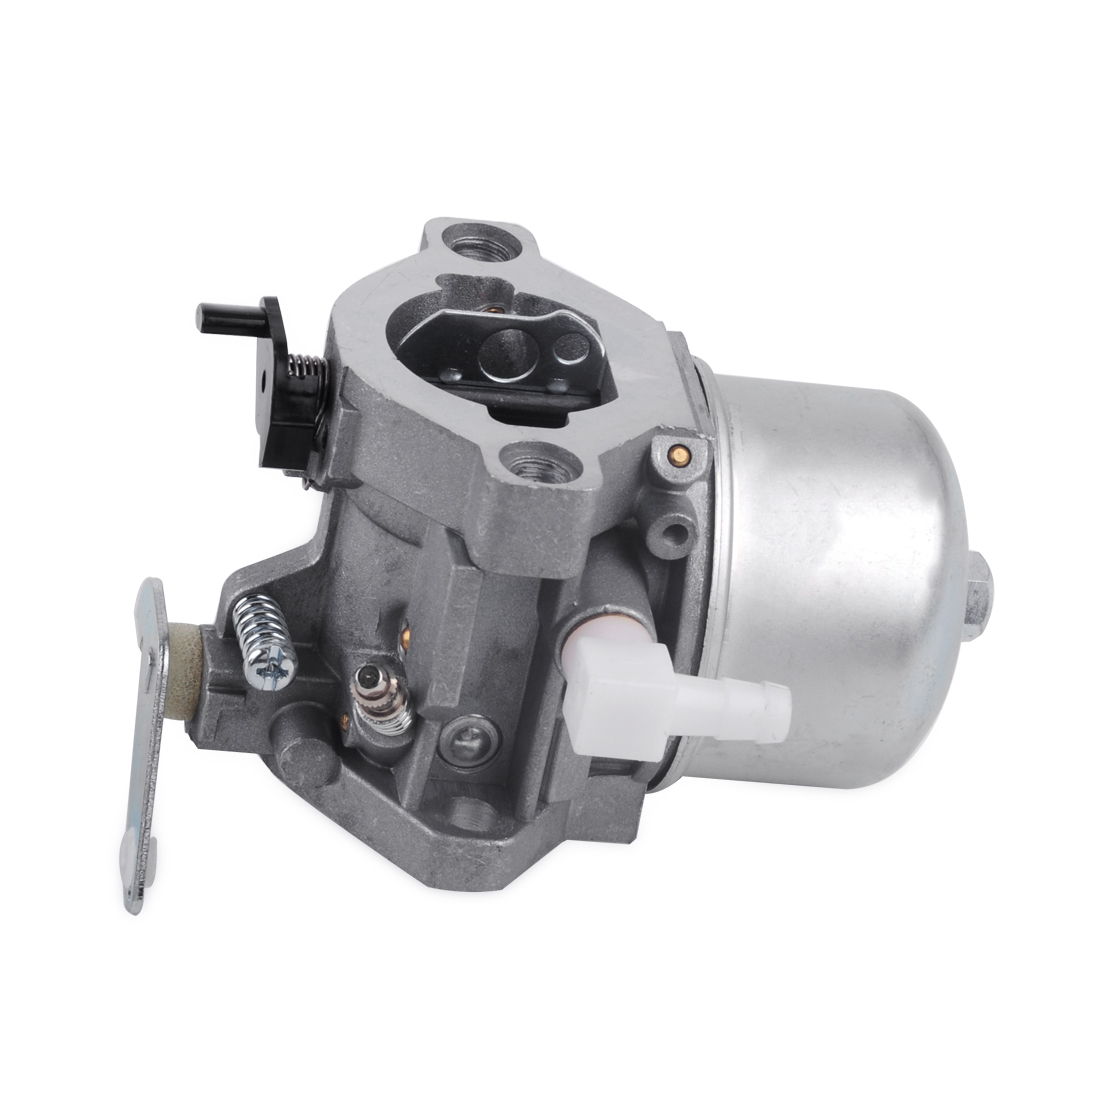 LETAOSK New High Quality Carburetor Carb Fit For Briggs & Stratton 690119 Replaces 694526 Accessories trx 500 foreman carburetor carb 2005 2011 brand new highest quality